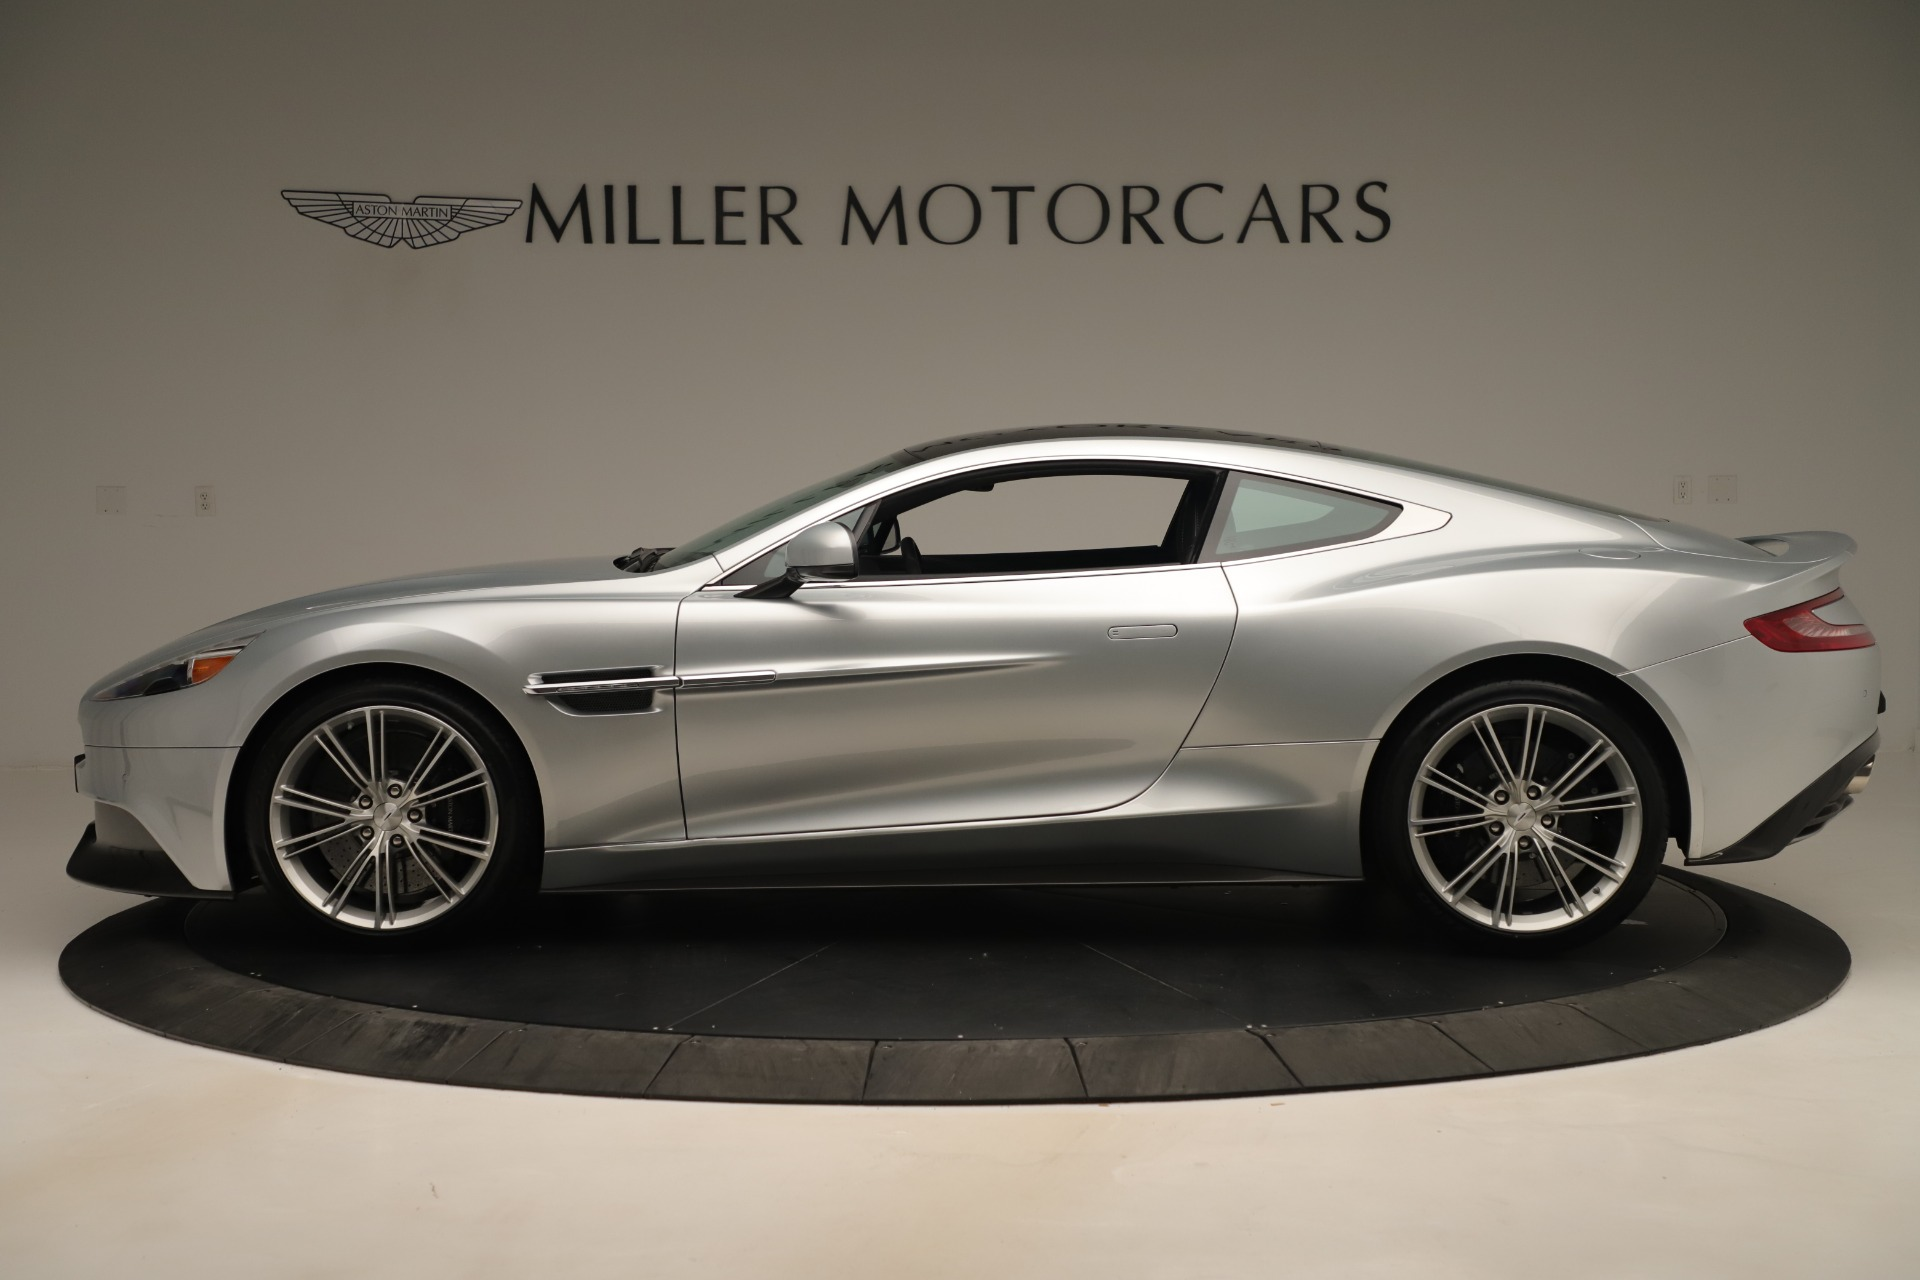 Used 2014 Aston Martin Vanquish Coupe For Sale In Westport, CT 3445_p2